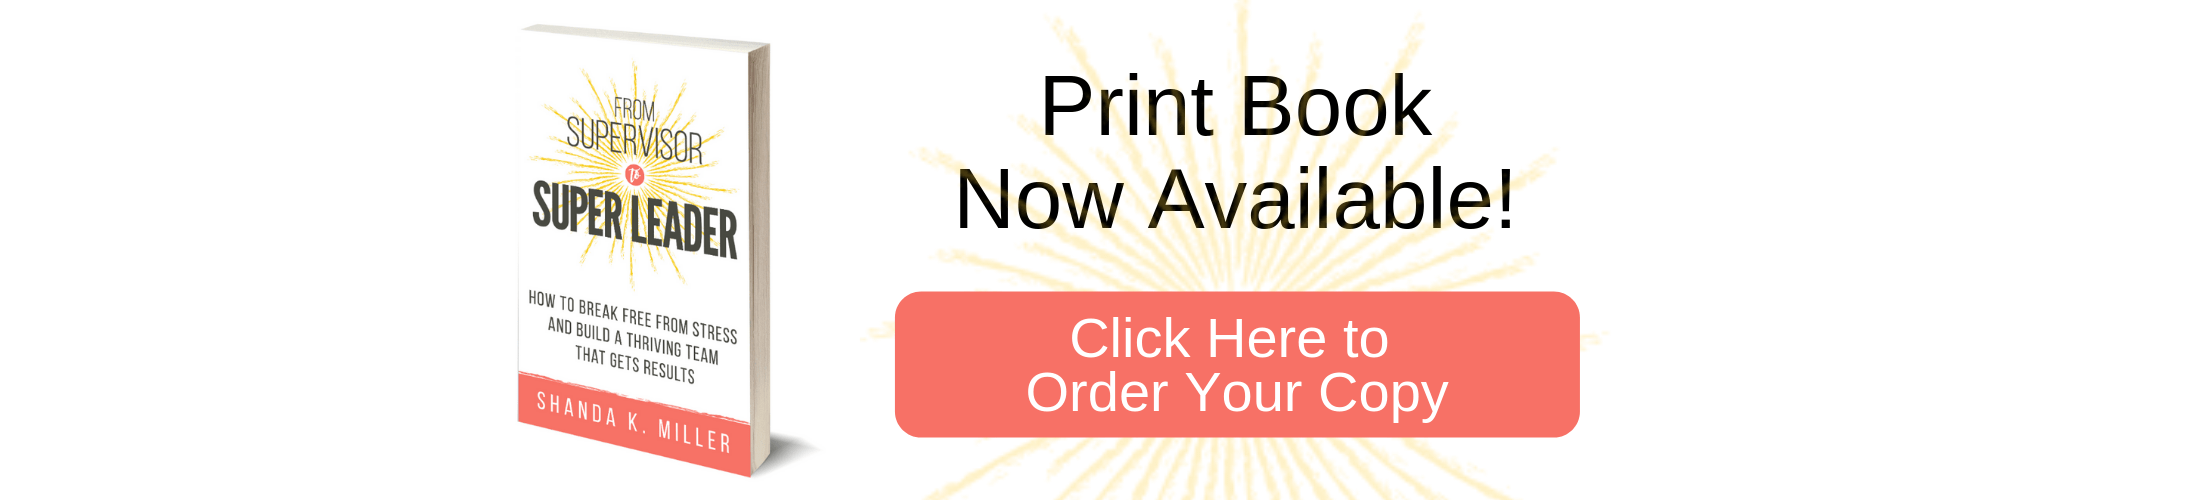 print book now available